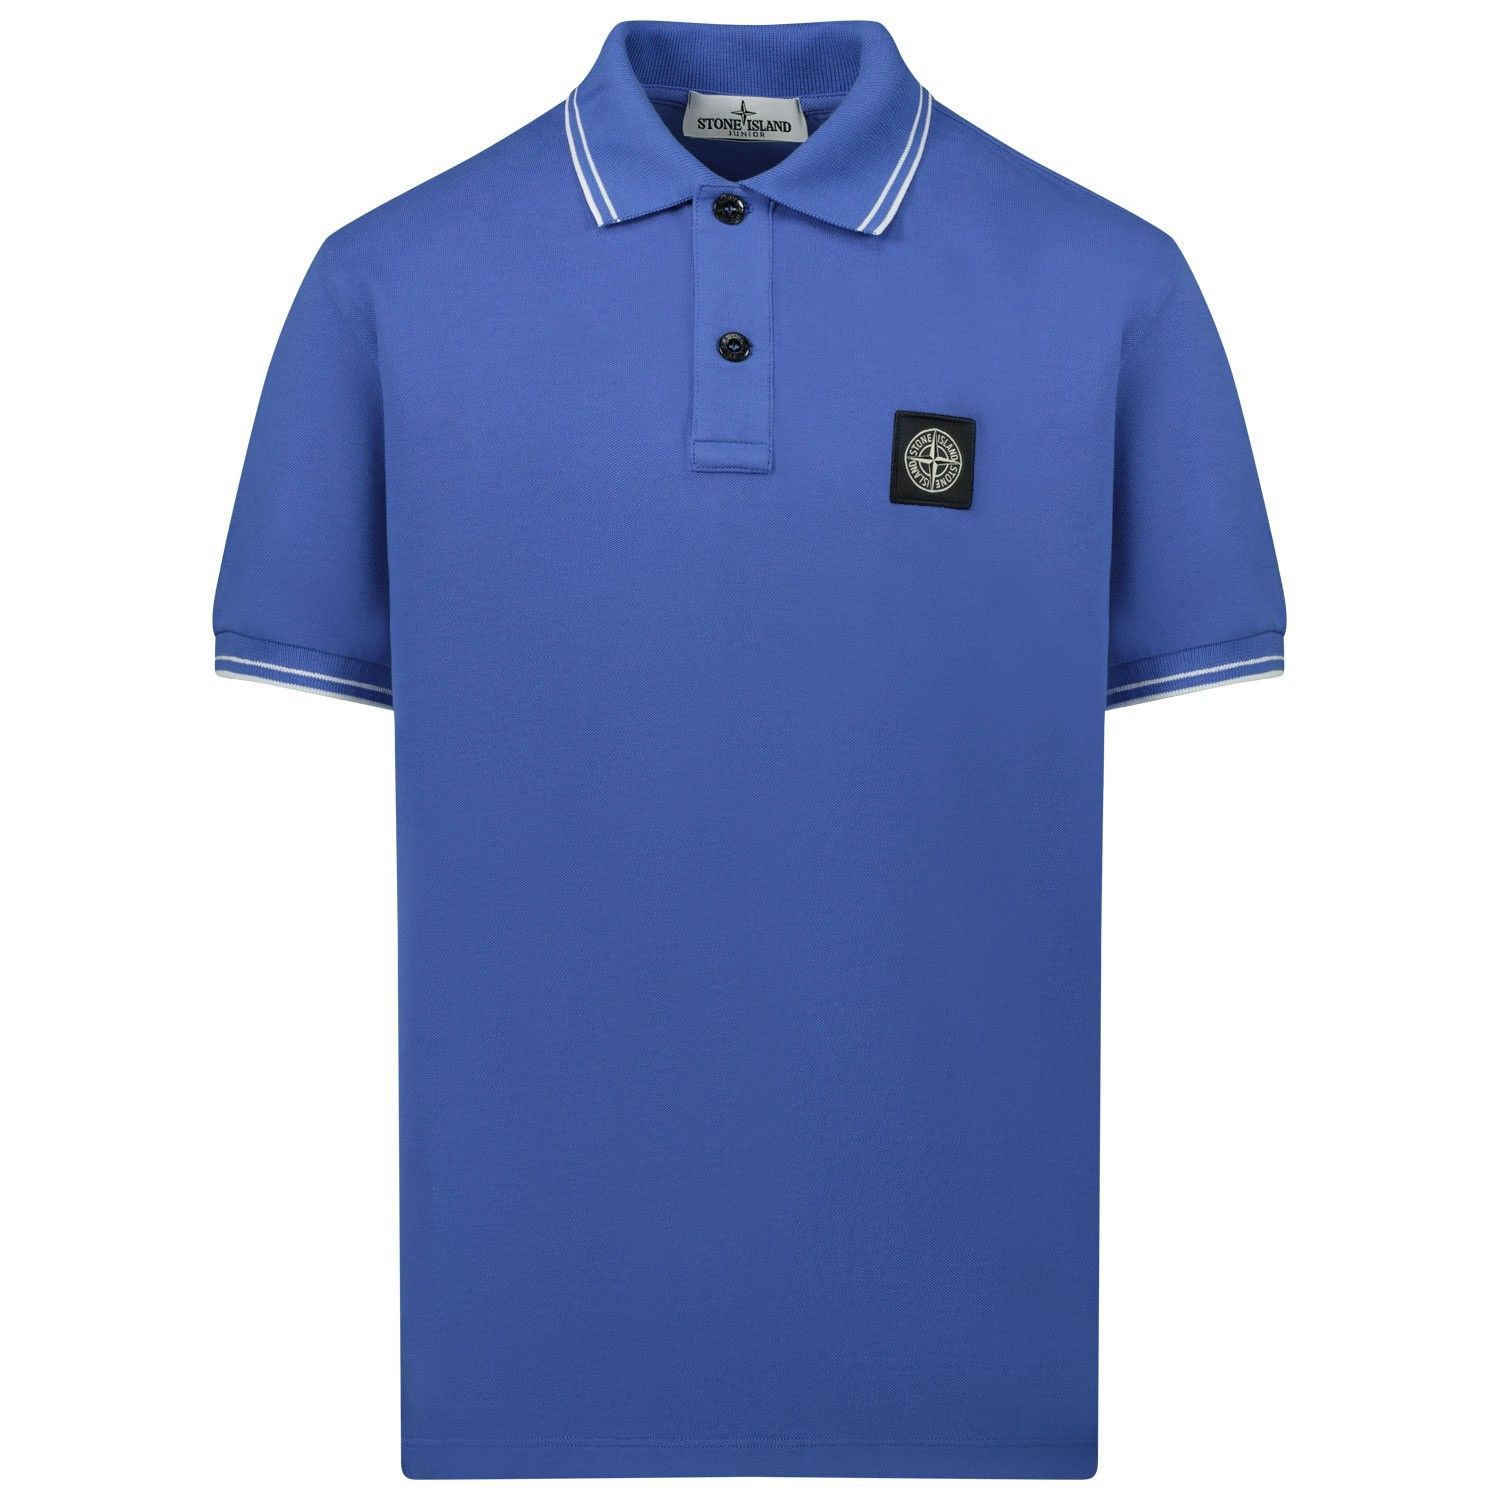 Picture of Stone Island 721621348 kids polo shirt cobalt blue